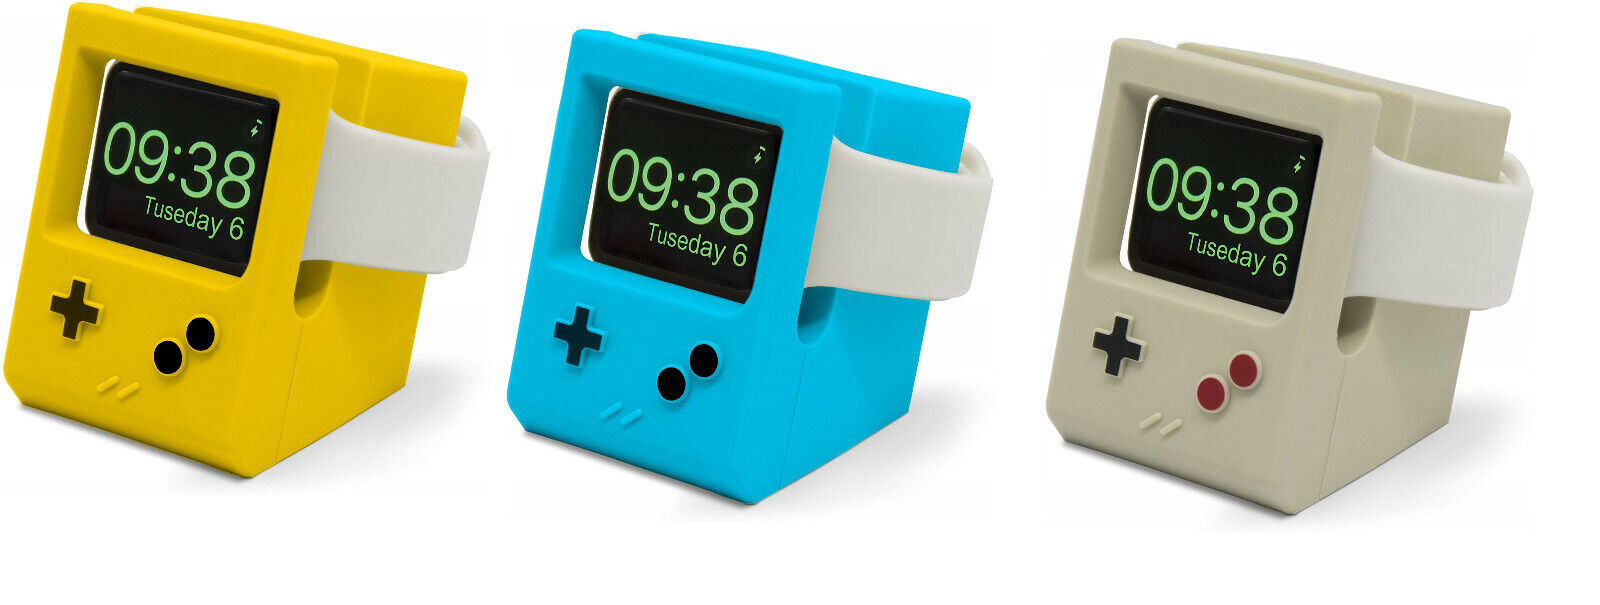 Apple Watch Retro Game Boy Charger Stand Charging Dock for Series 5/4/3/2/1 Cell Phones & Accessories